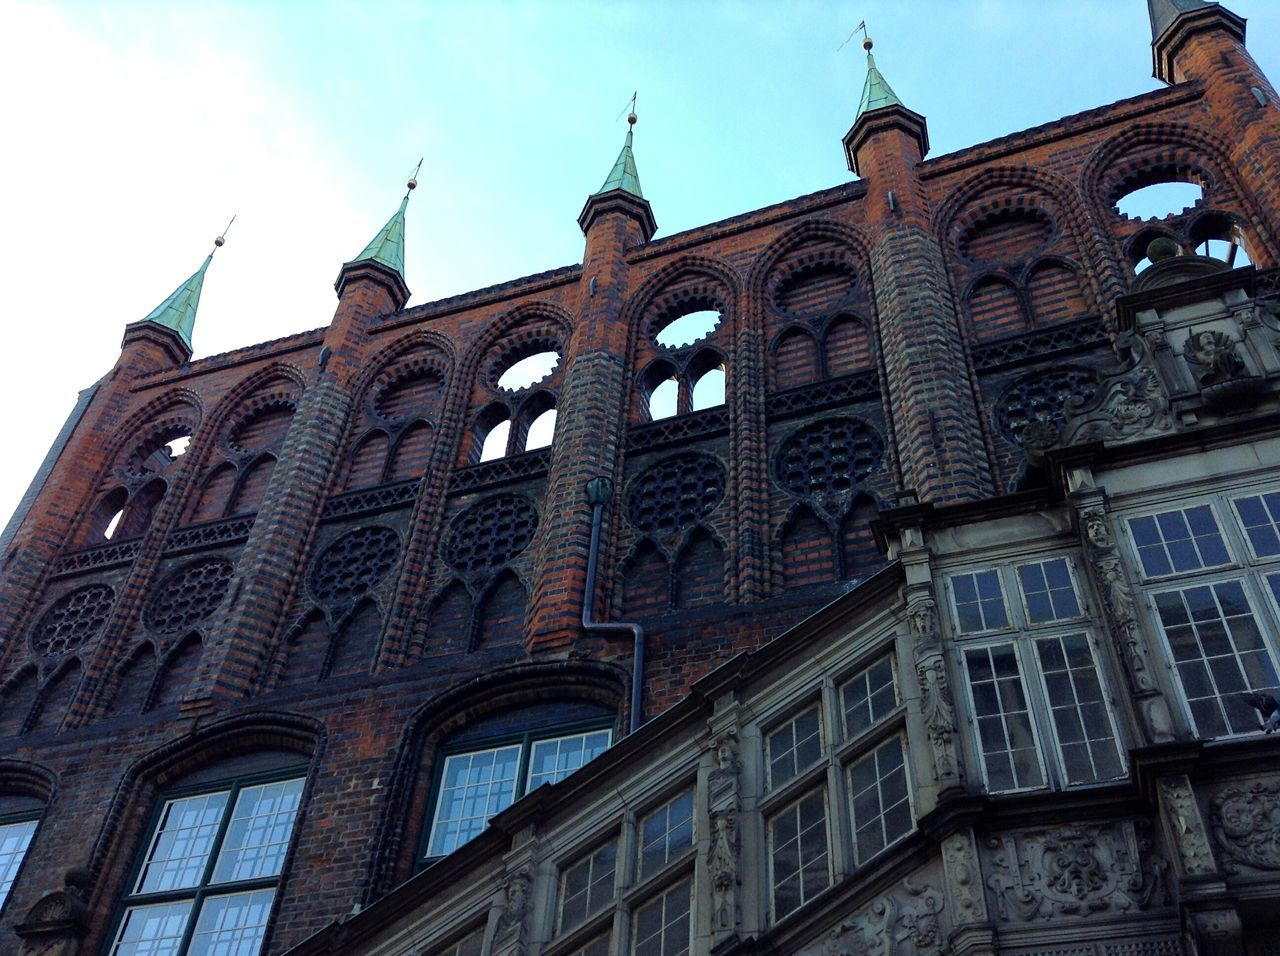 Architecture in Lübeck. · Germany Schleswig-Holstein Hansestadt Lübeck Hl Hanseatic Old Town Low Angle View Urban Geometry Urban Landscape History Built Structure Sightseeing No People